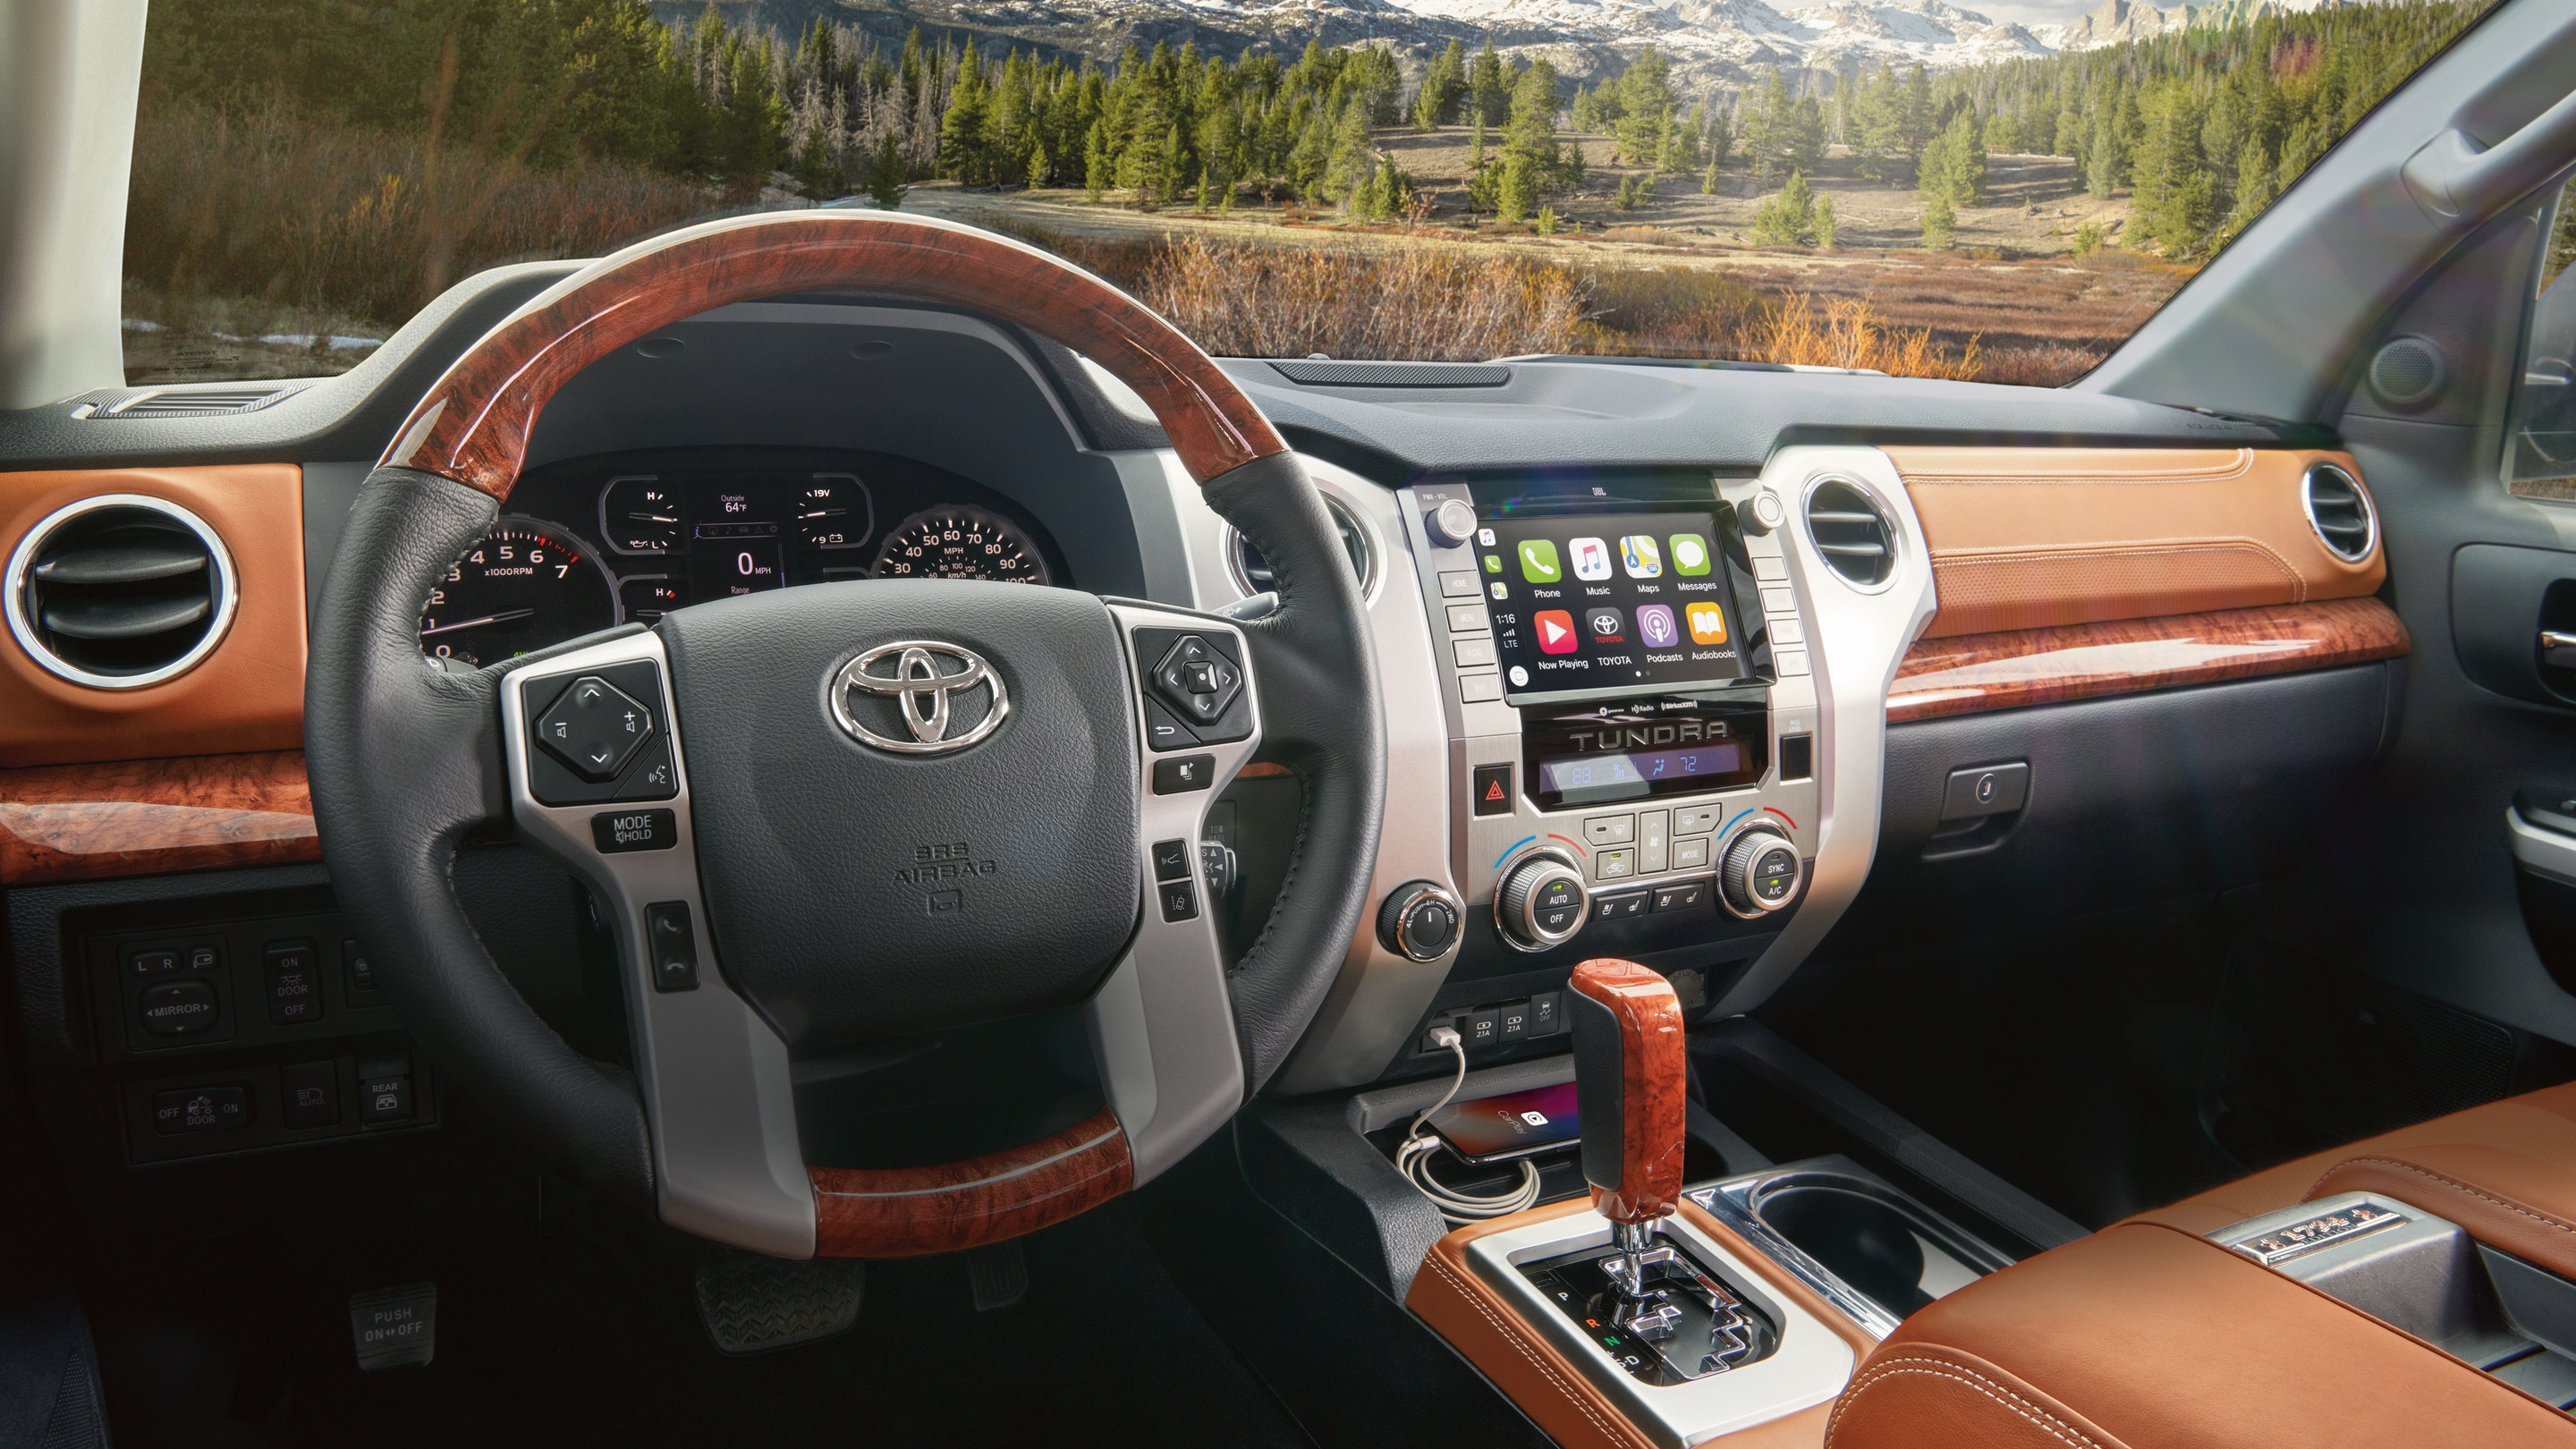 2020 Toyota Tundra Center Stack